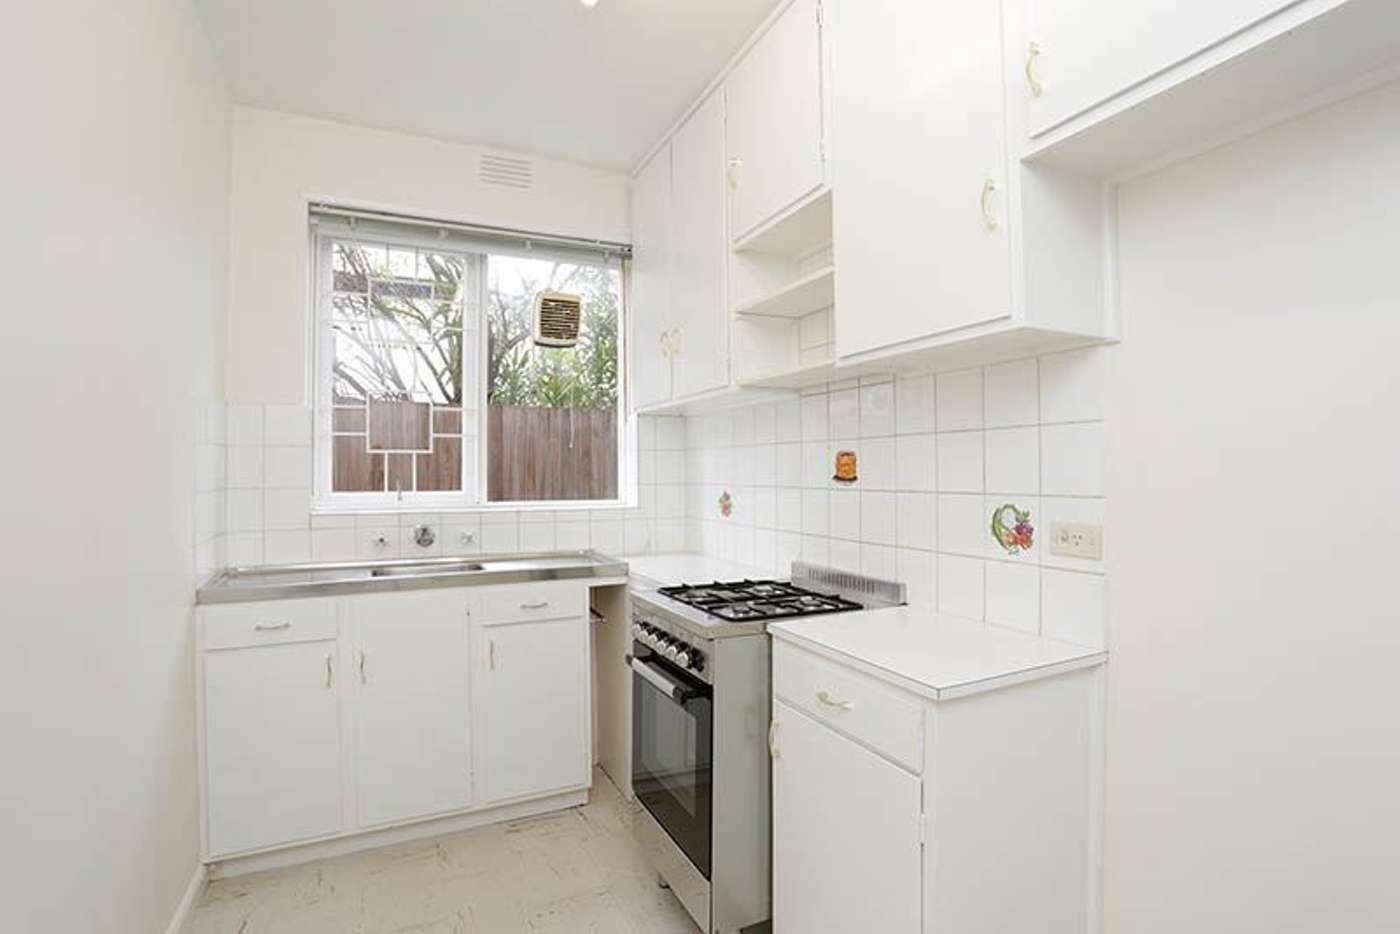 Sixth view of Homely apartment listing, 2/63 Osborne Street, South Yarra VIC 3141